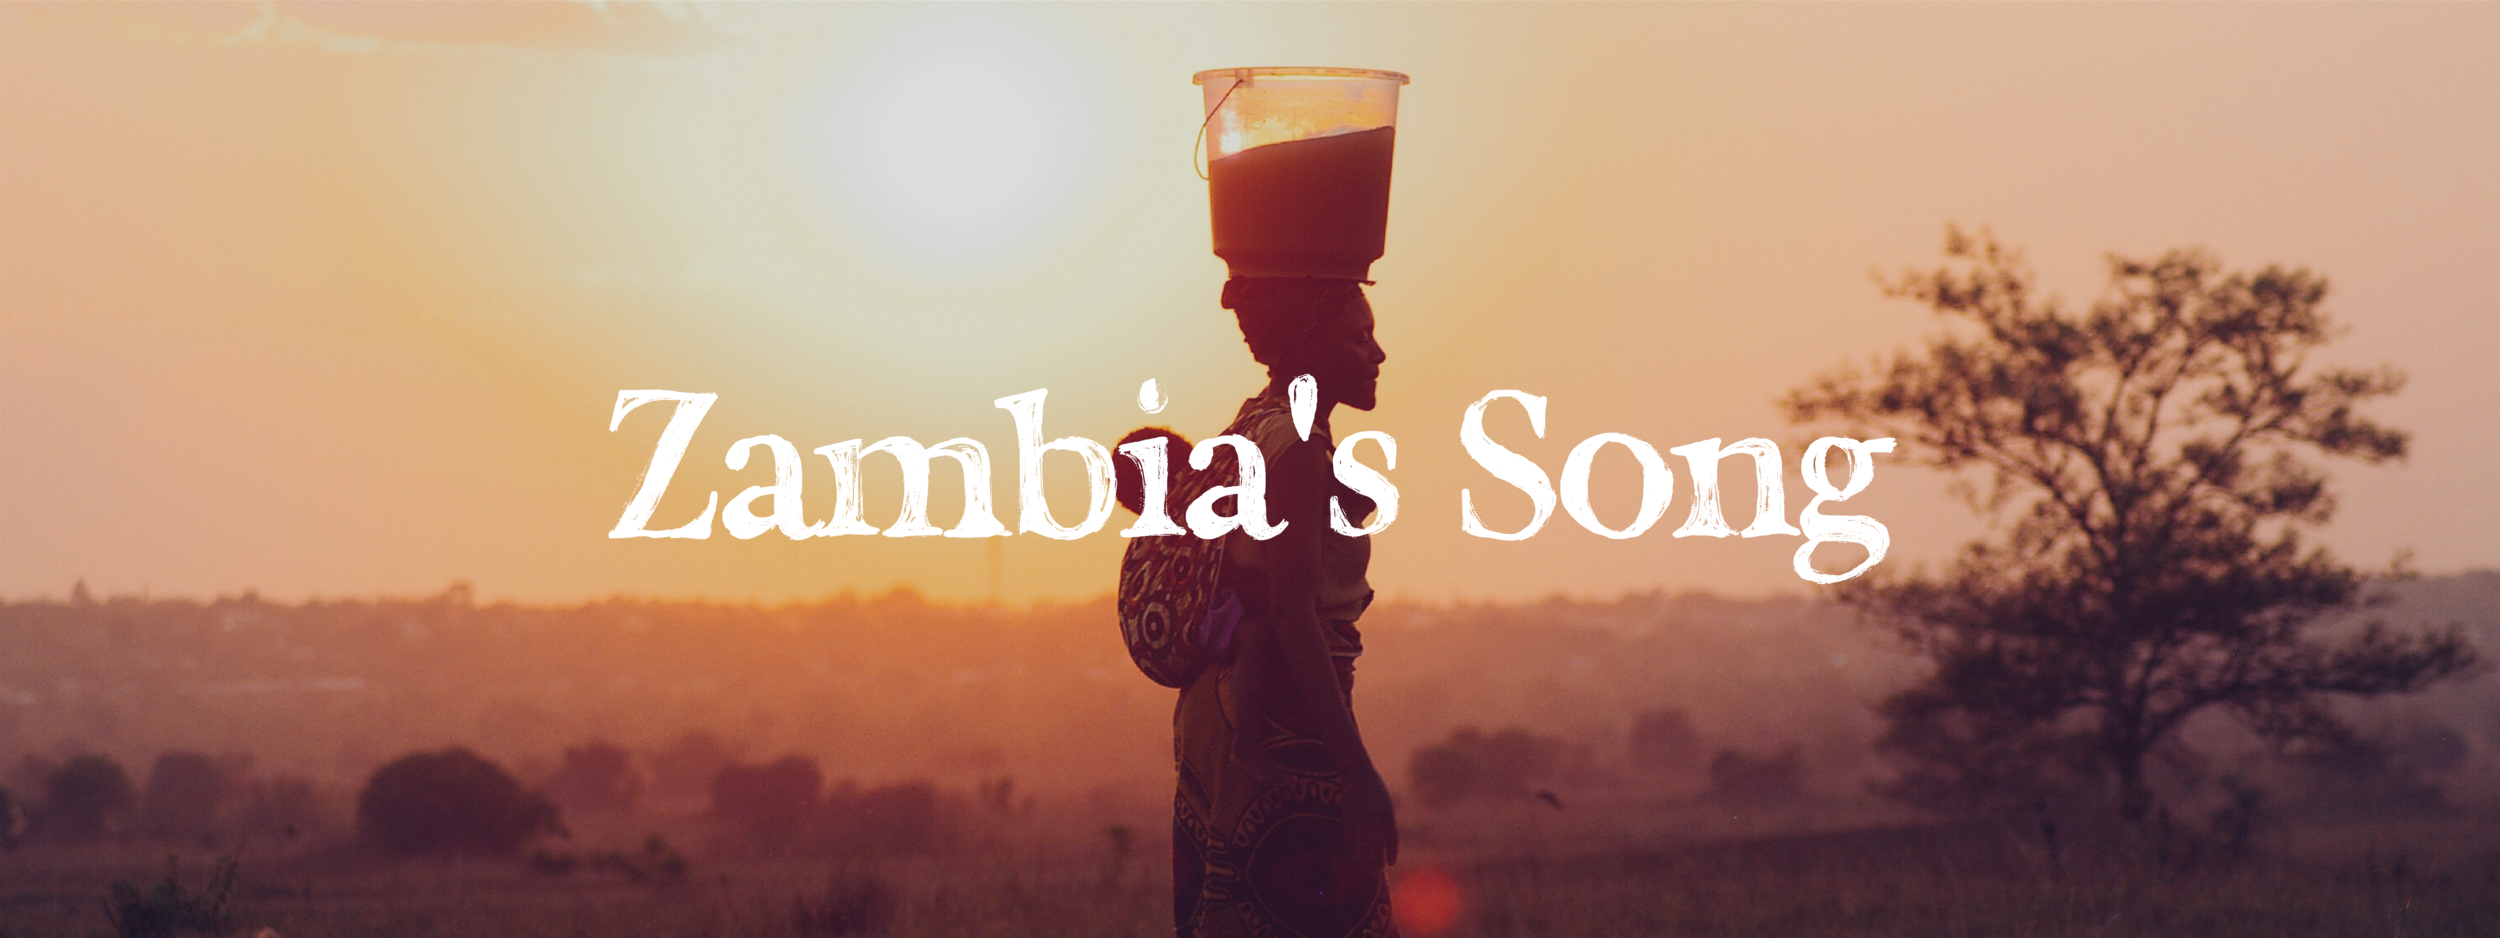 Zambia's Song Update - 1600x600-05.png